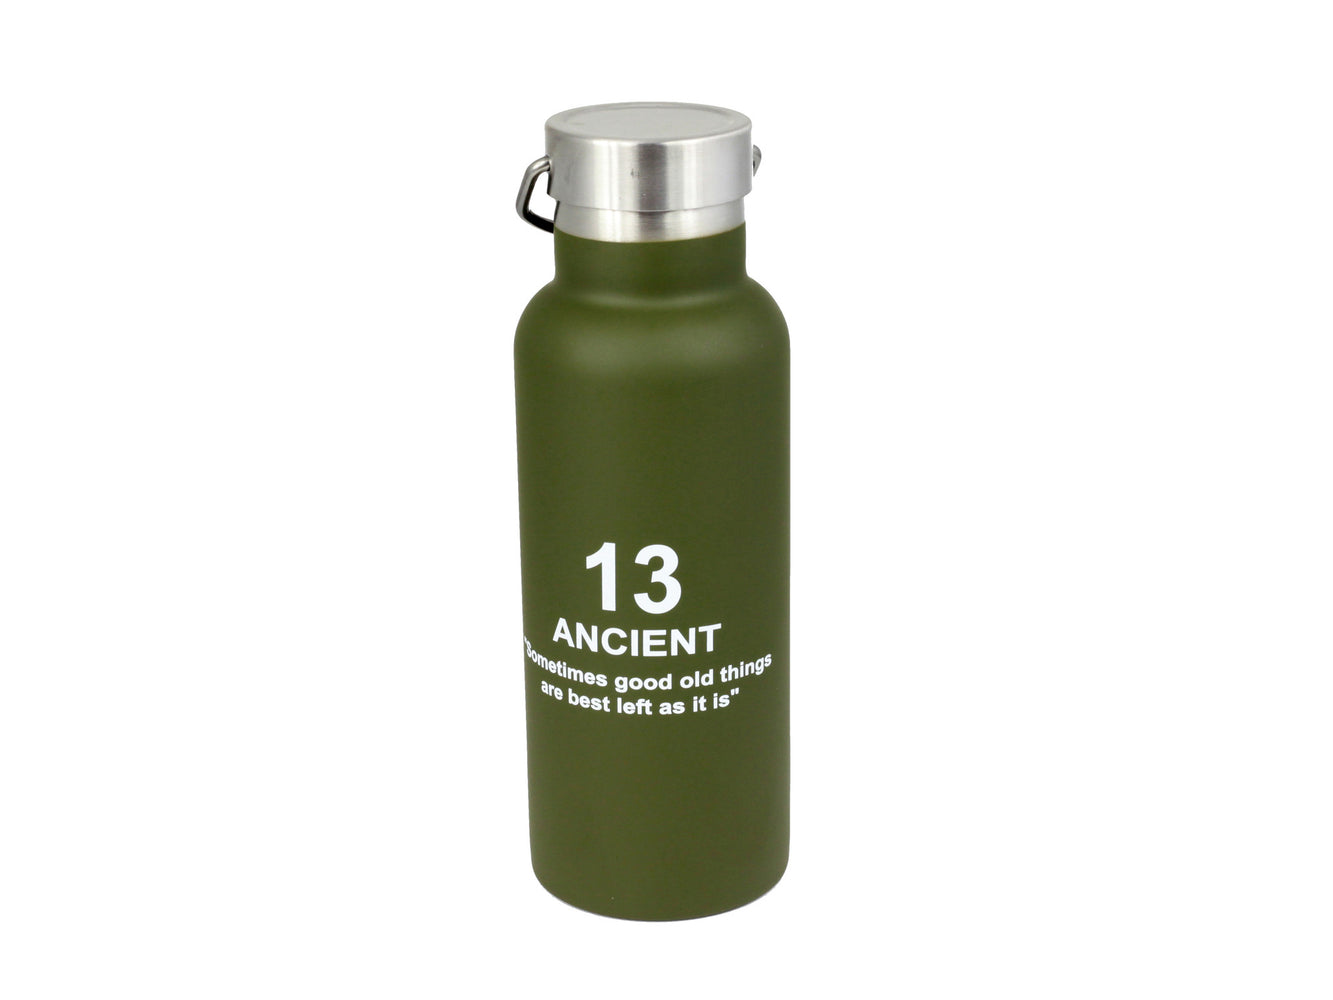 Ancient Stainless Bottle | Army Green by Showa - Bento&con the Bento Boxes specialist from Kyoto